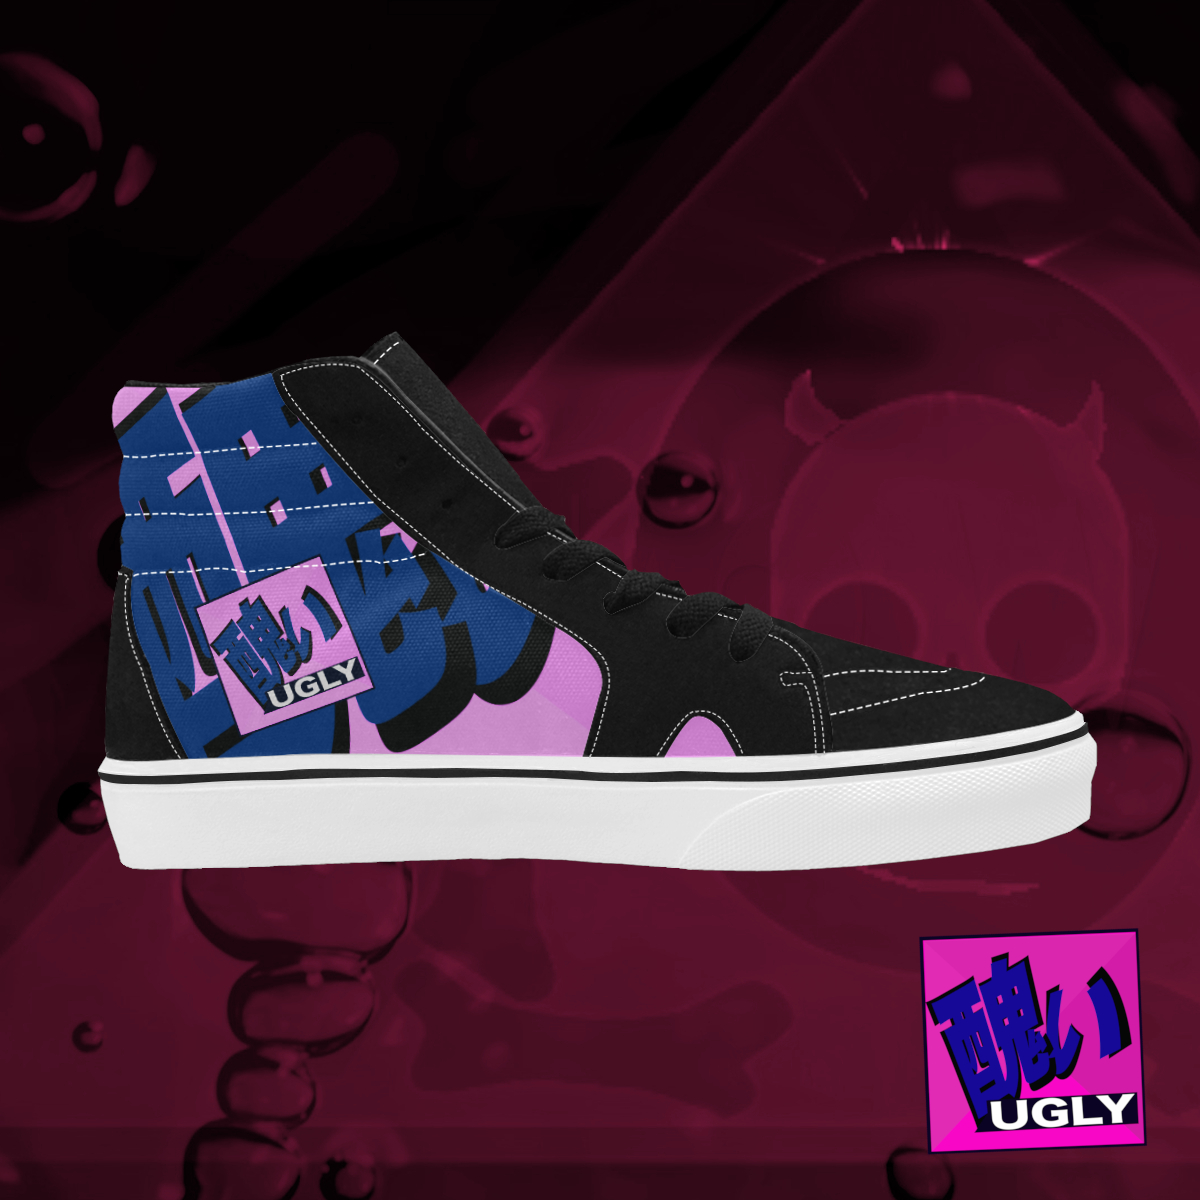 UGLY logo high top skate shoes The Lowest of Low Bubblegum